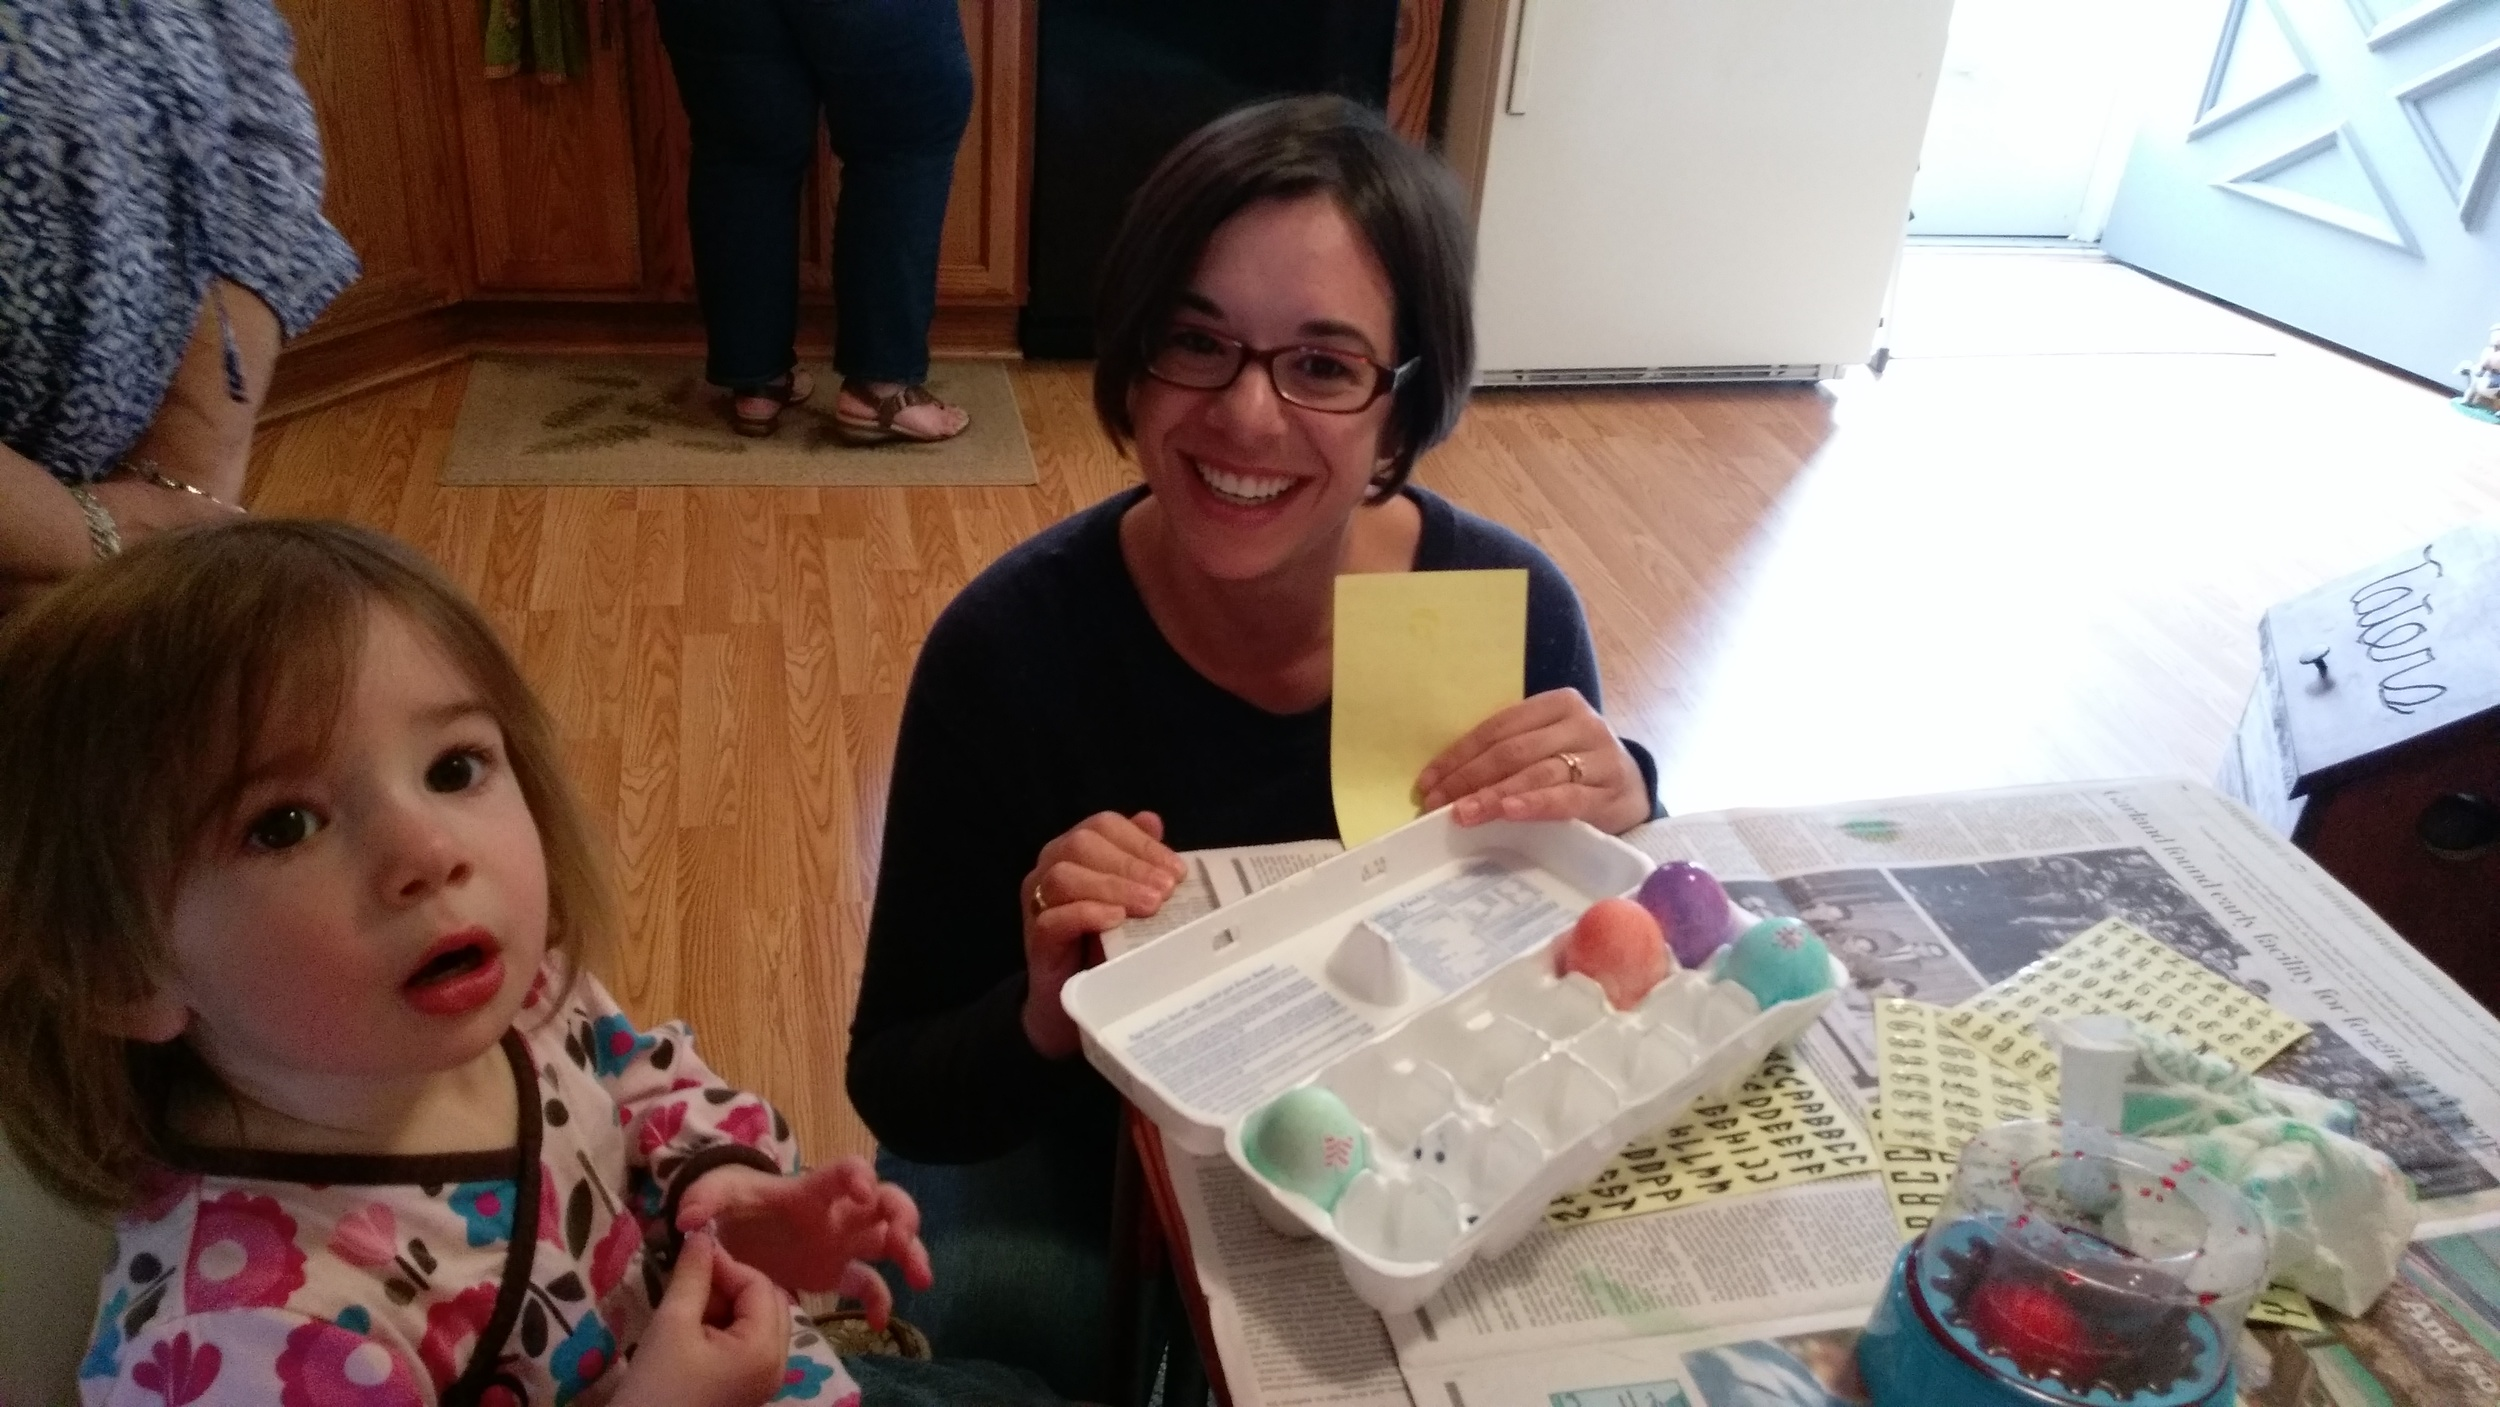 Cece and Rizzo coloring some eggs.